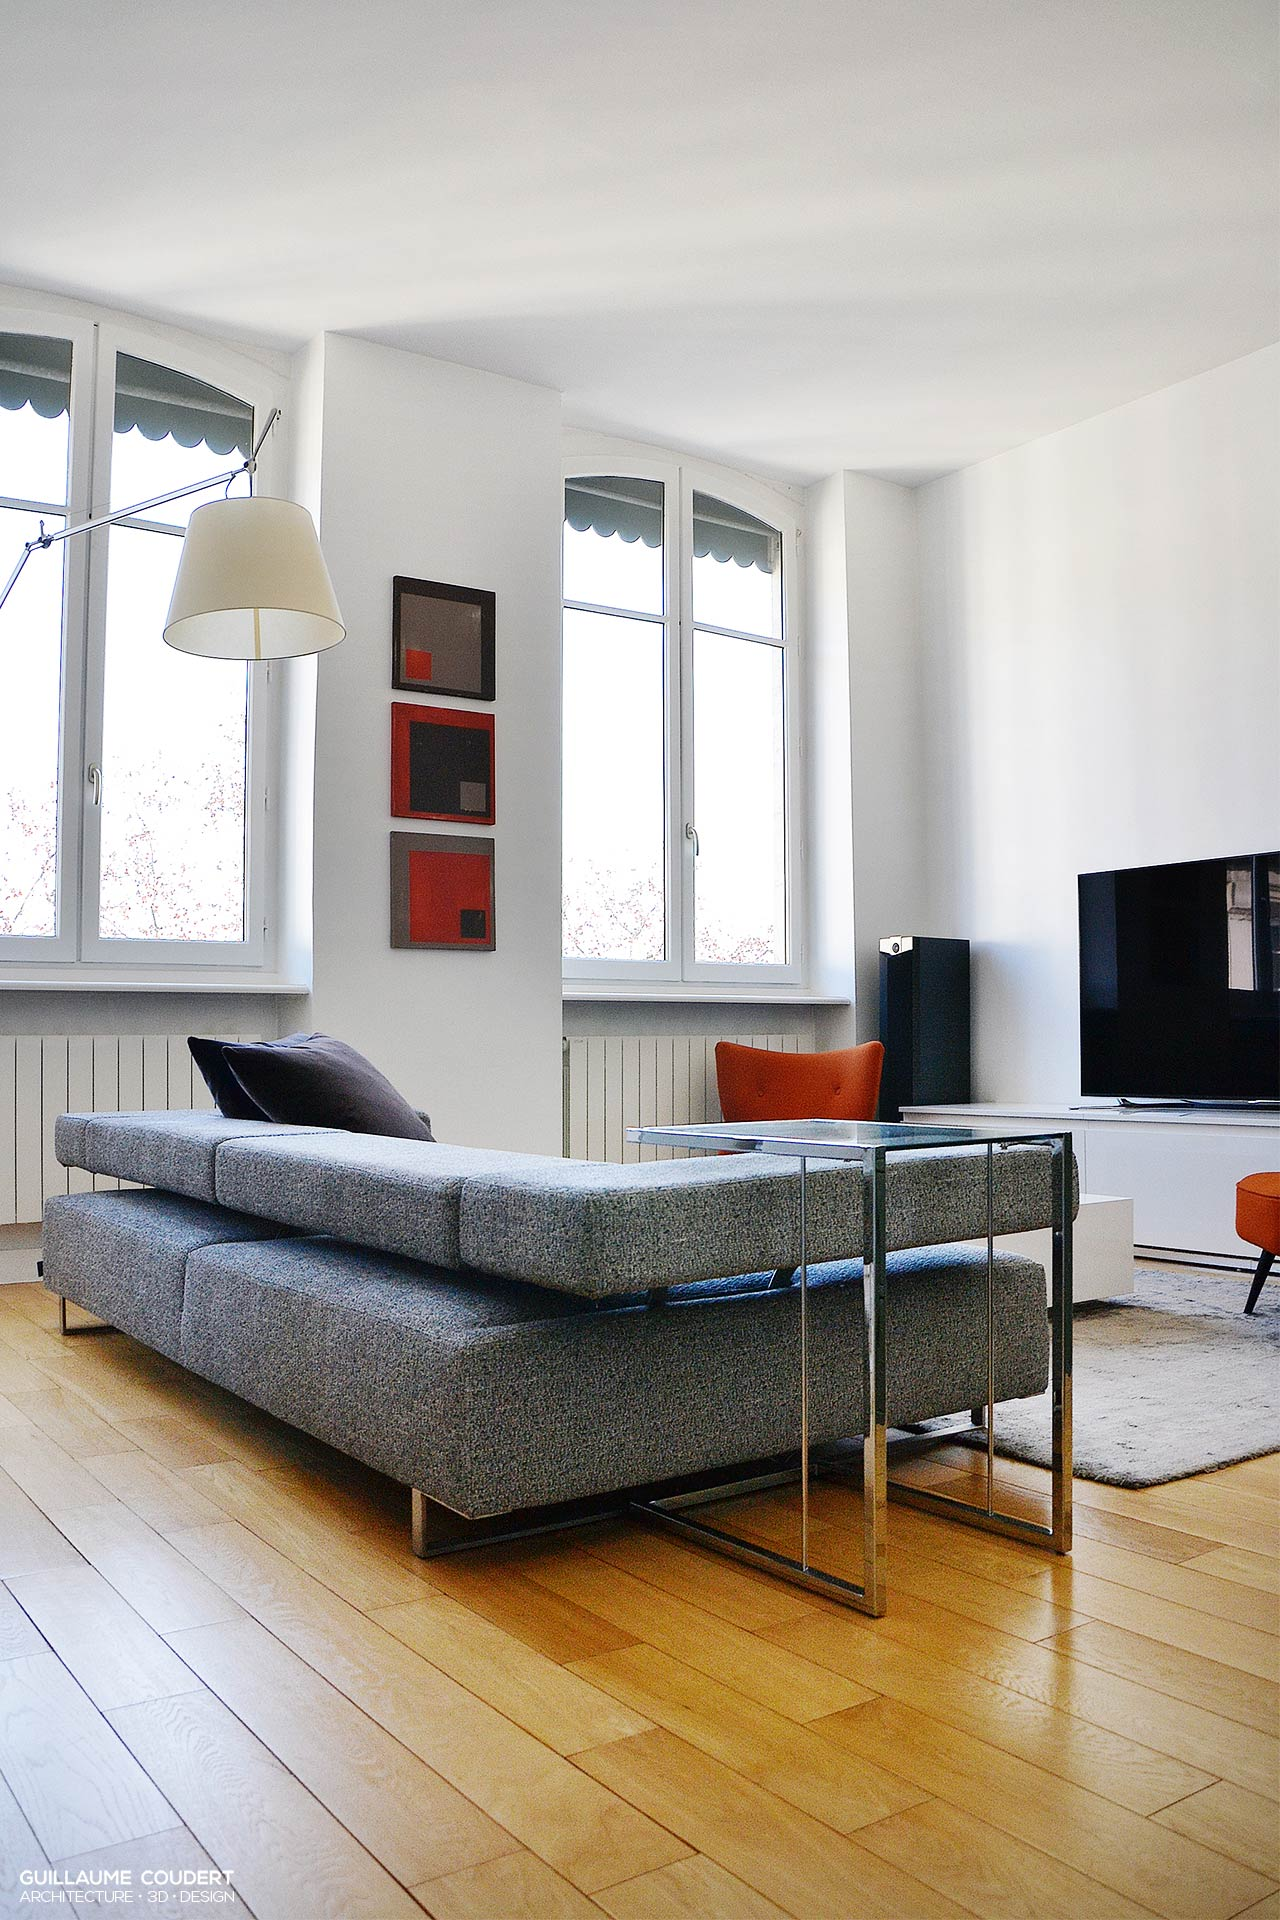 appartement gag01 lyon 69002 guillaume coudert. Black Bedroom Furniture Sets. Home Design Ideas